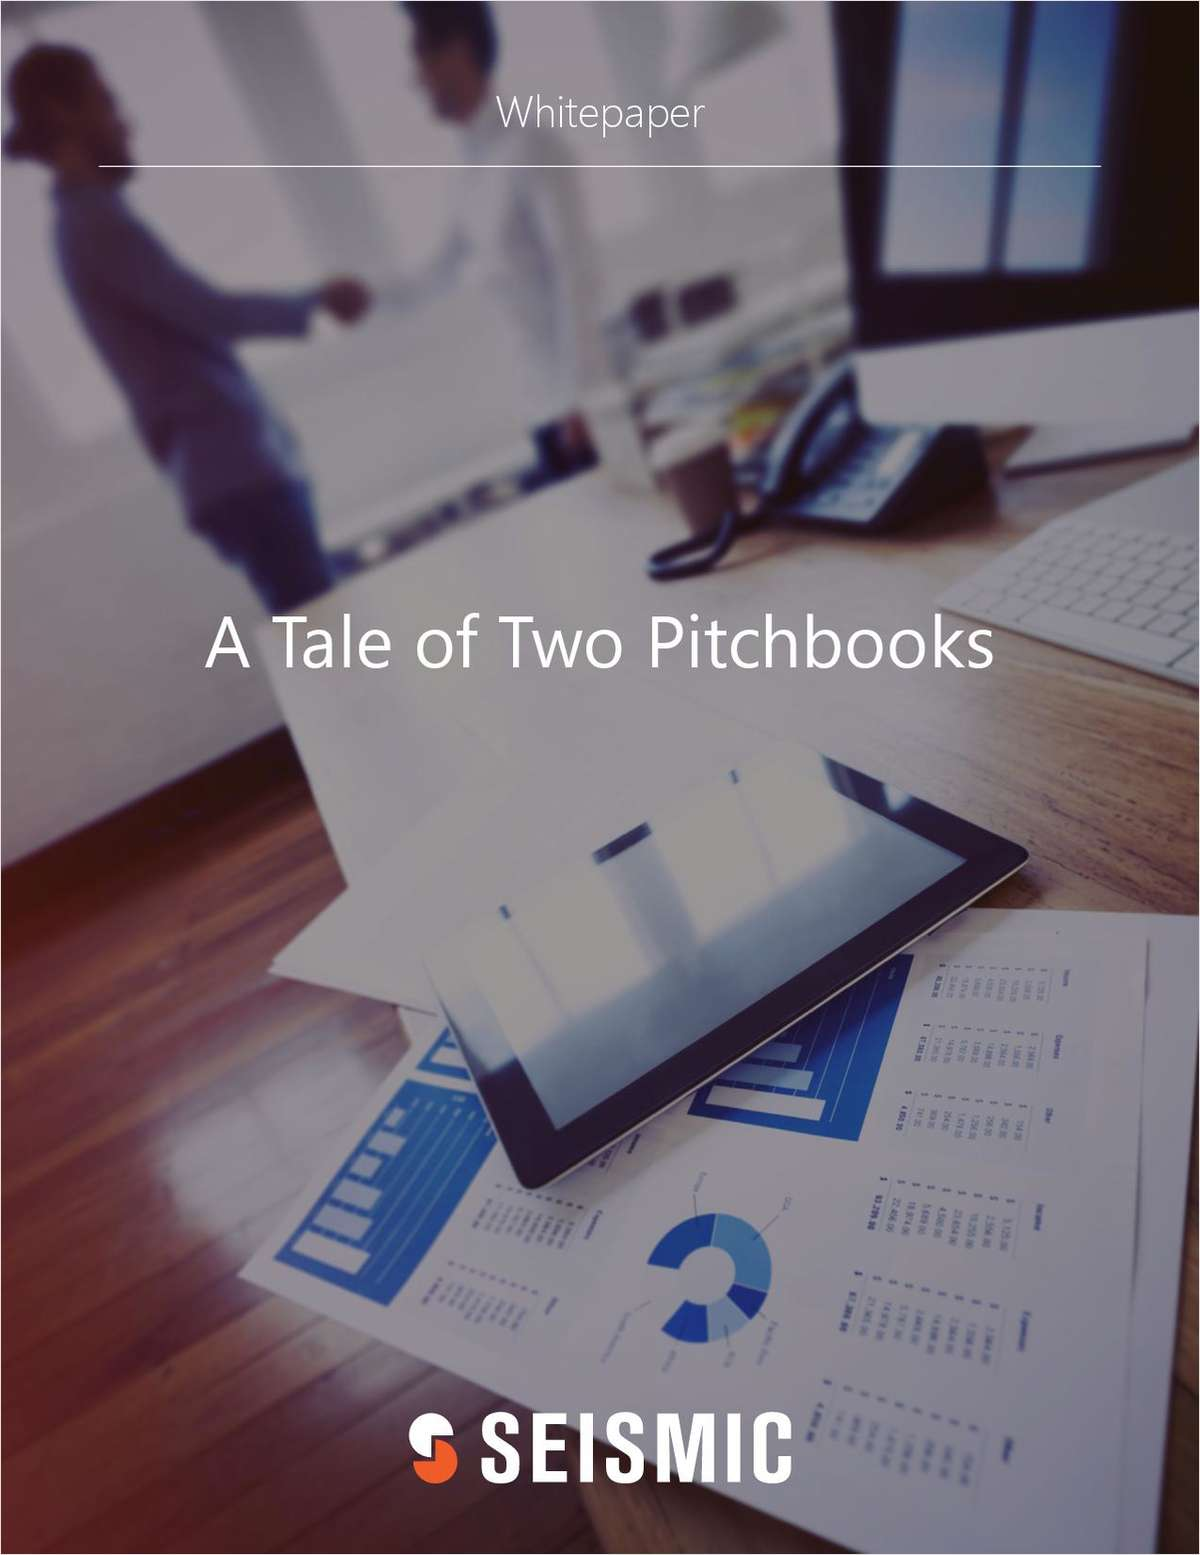 A Tale of Two Pitchbooks